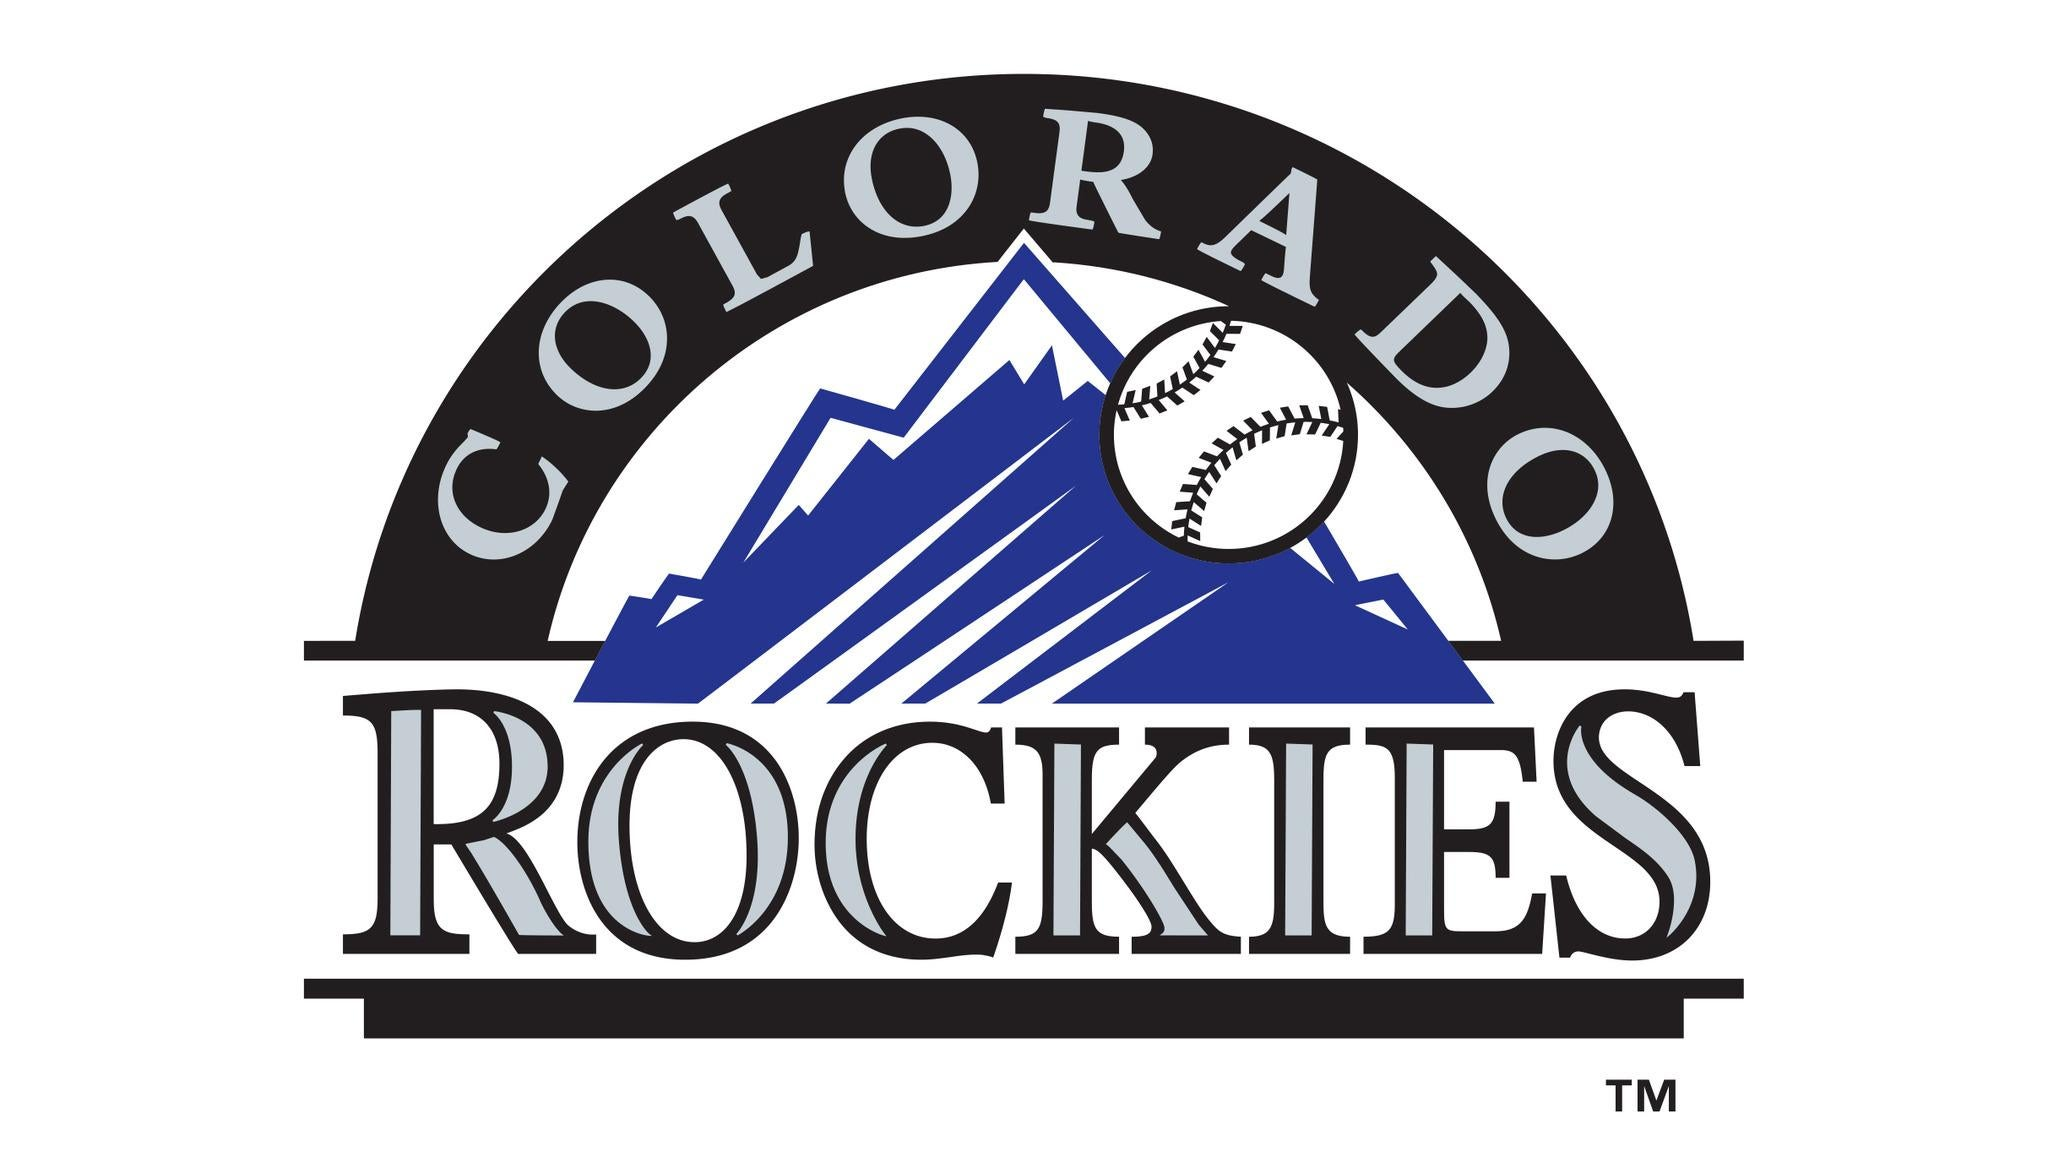 Colorado Rockies vs. Los Angeles Dodgers at Coors Field - Denver, CO 80205